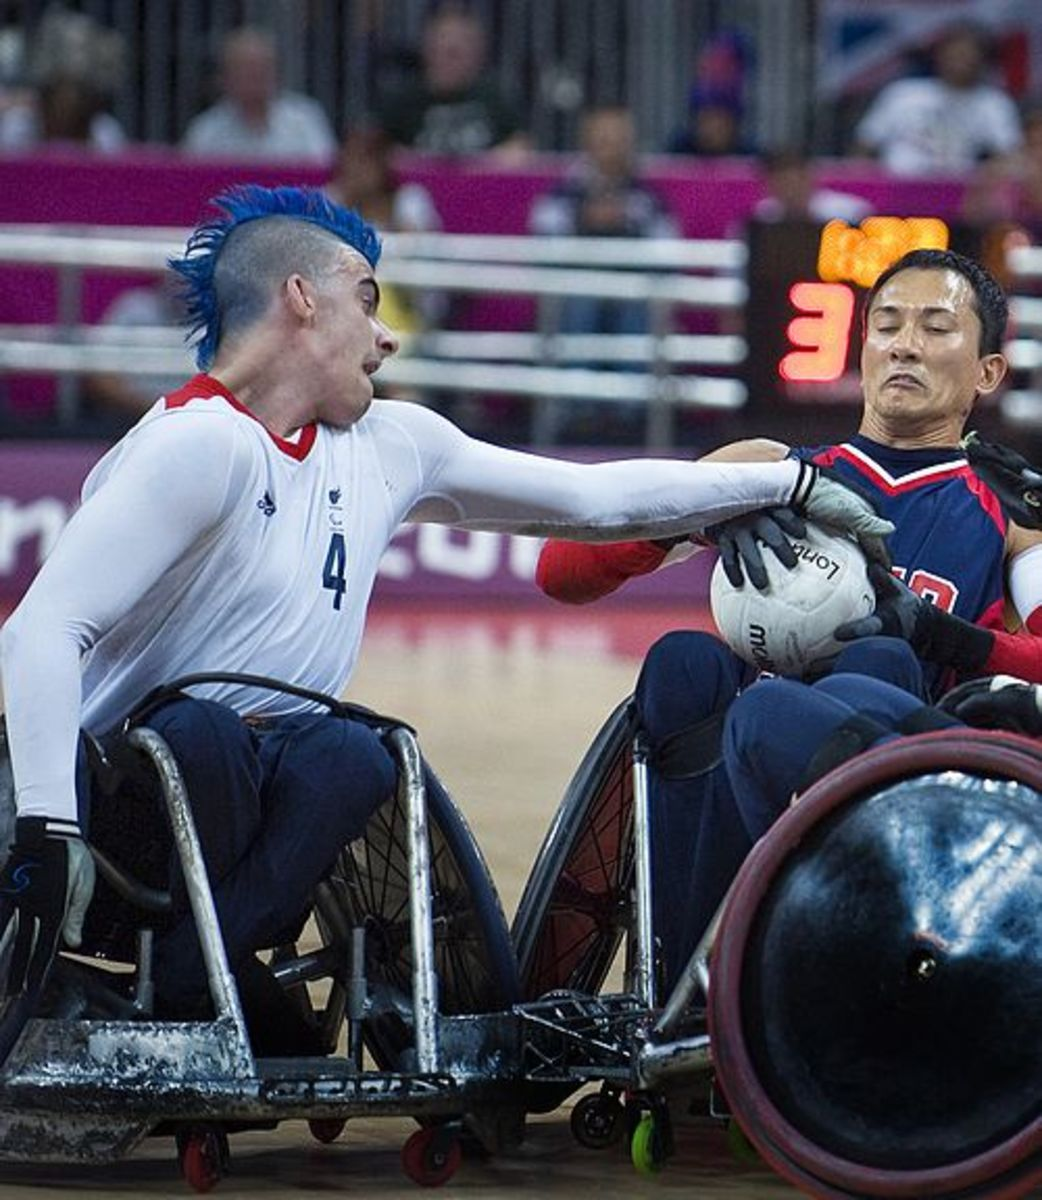 David Anthony, a British wheelchair rugby champion in the 2012 Summer Paralympics in London has undergone 11 spinal operations.